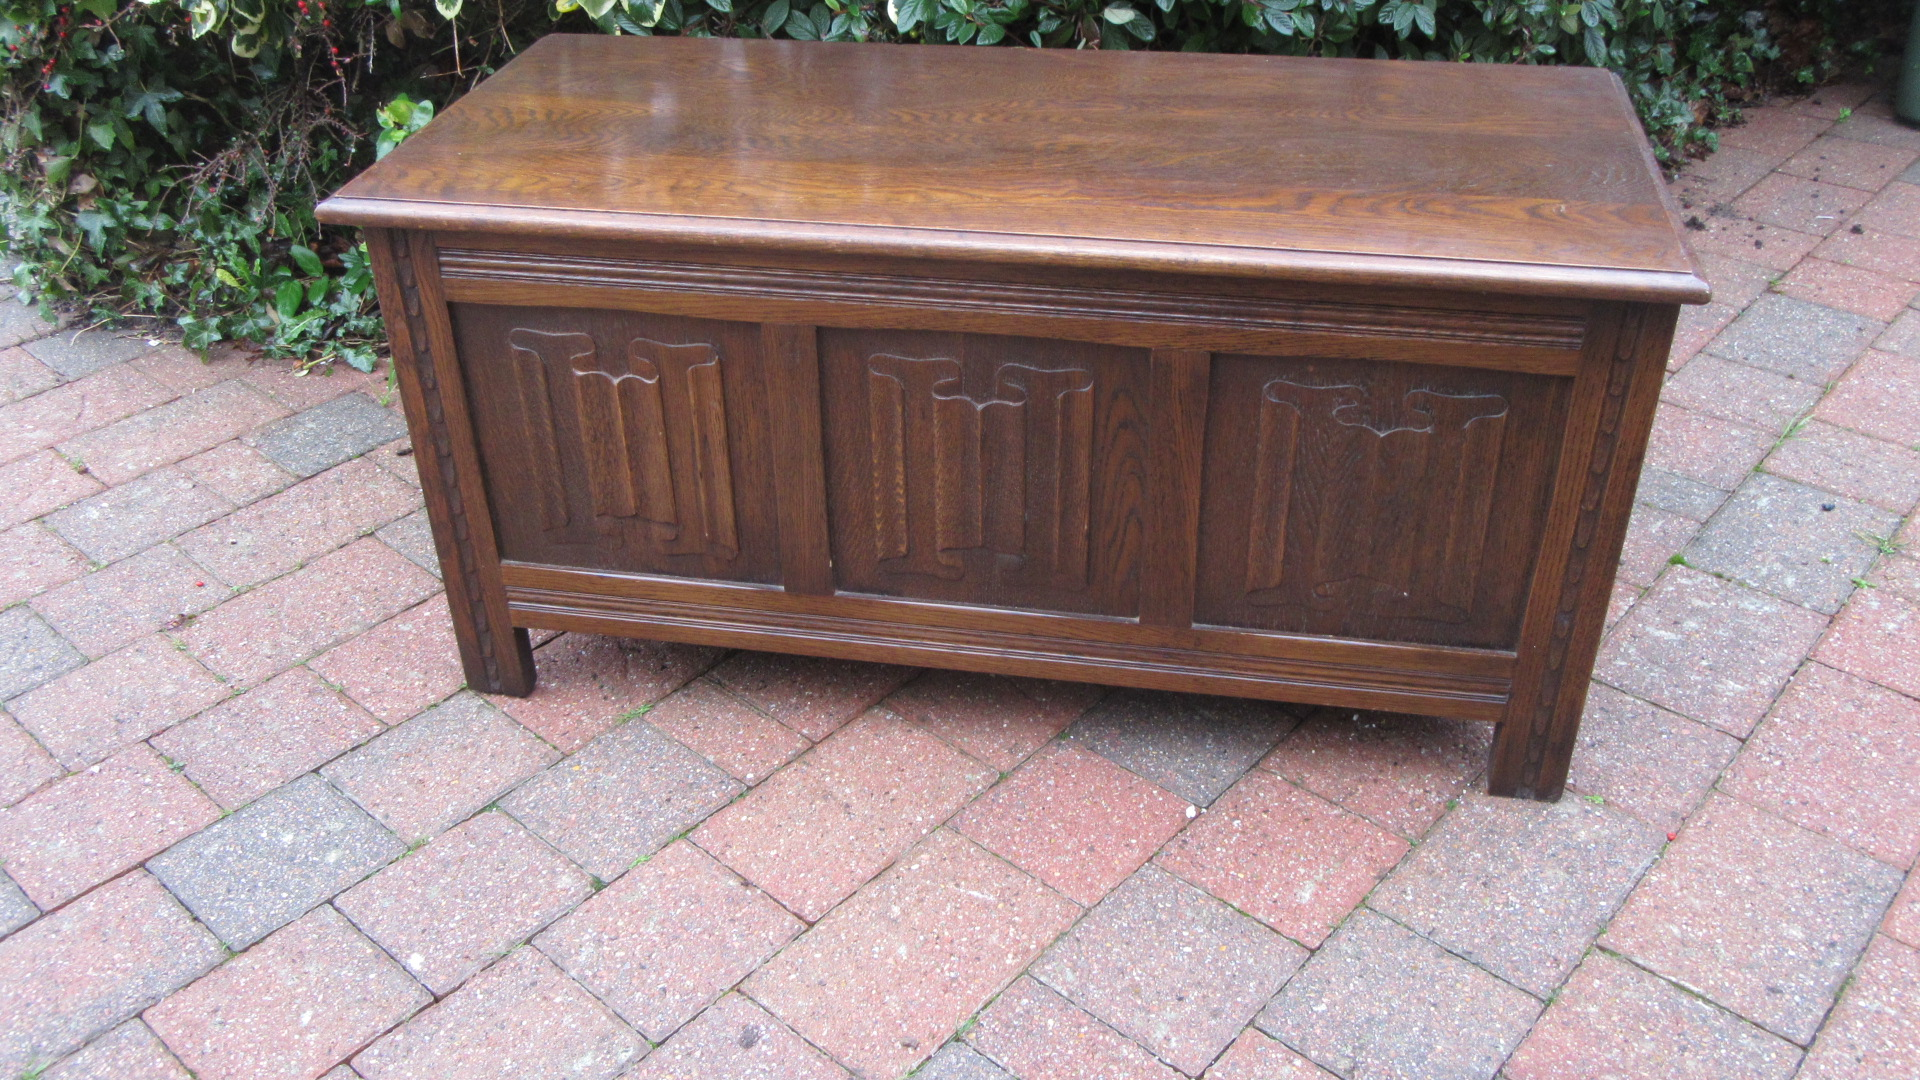 ANTIQUE OAK LINENFOLD BLANKET BOX